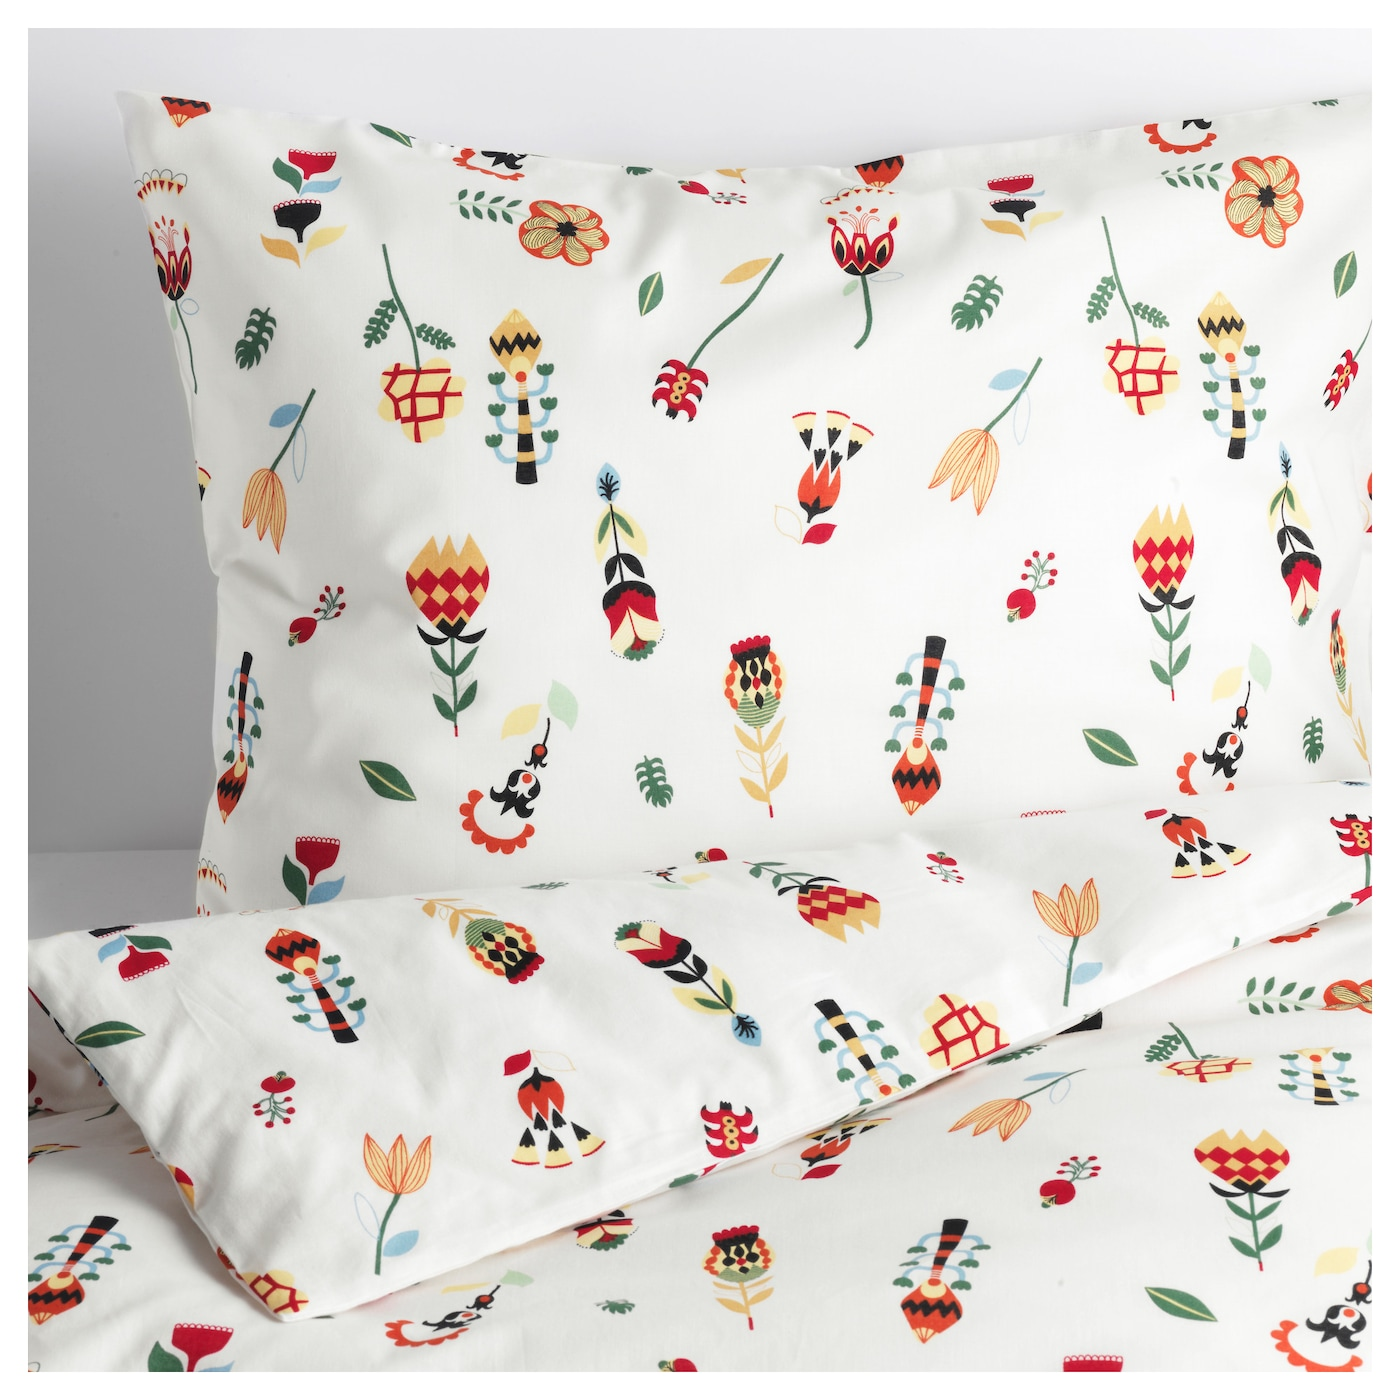 IKEA ROSENFIBBLA quilt cover and 2 pillowcases Cotton, feels soft and nice against your skin.